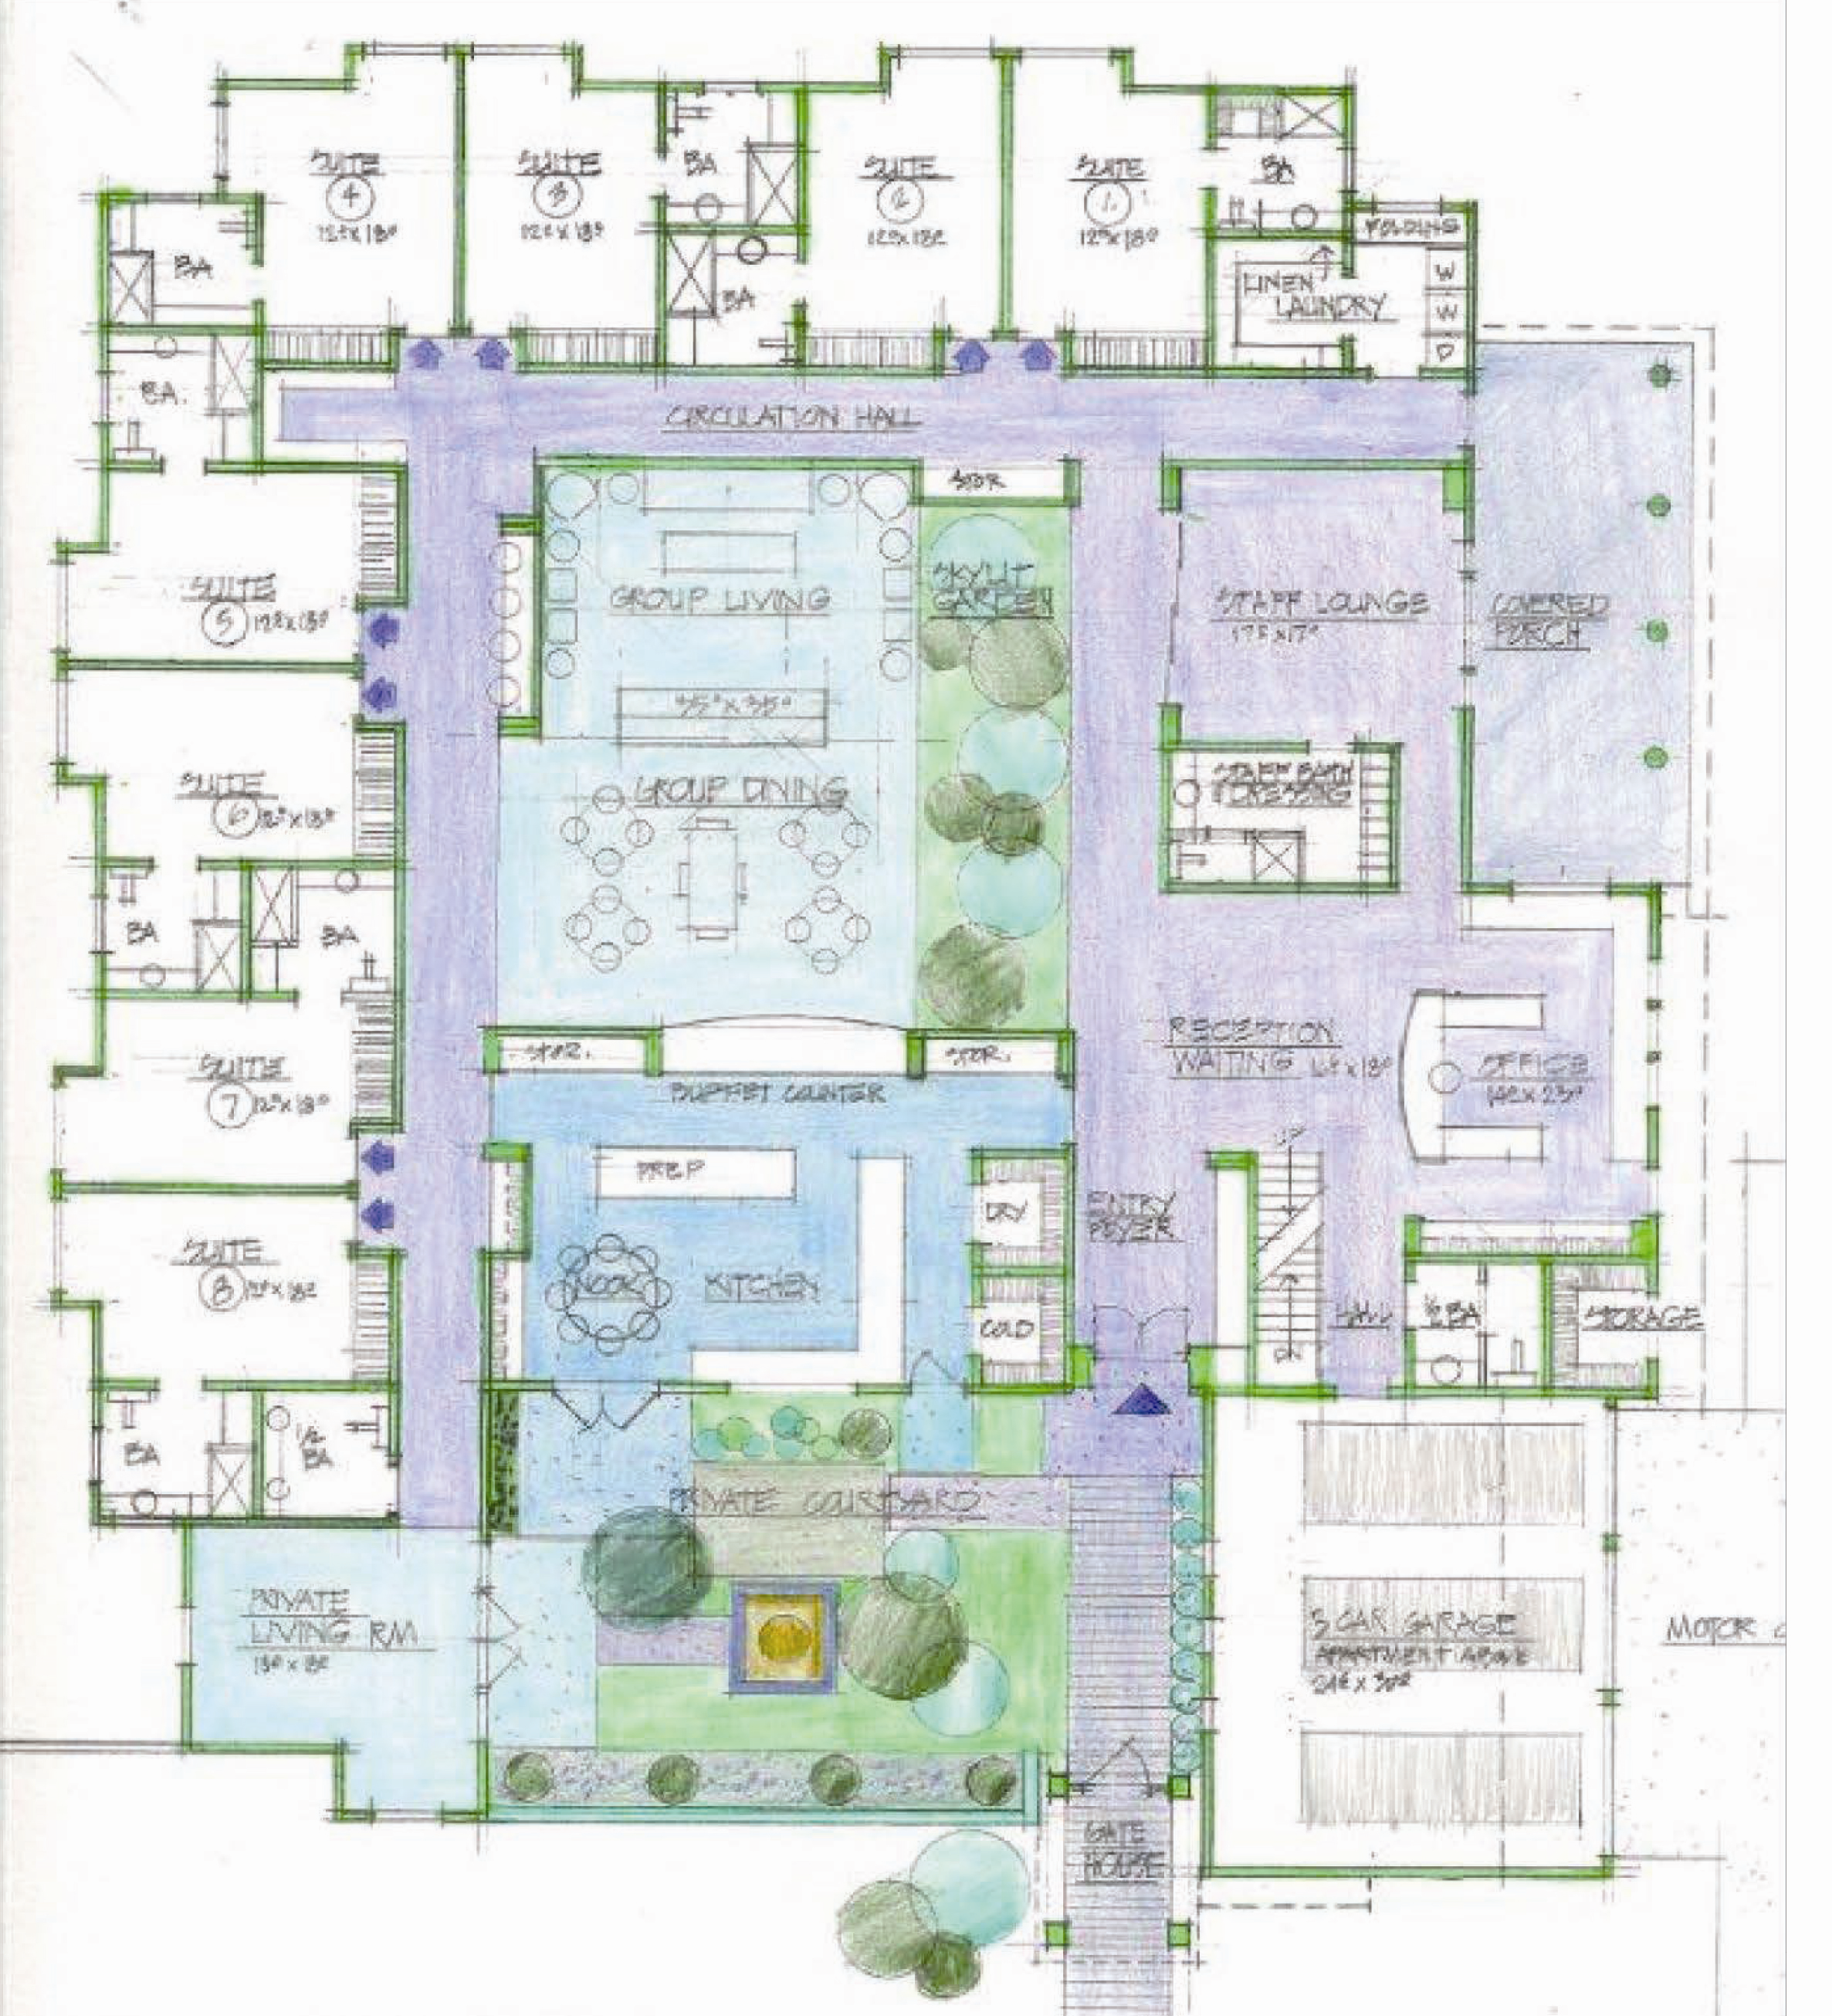 The proposed floorplan of the congregate care facility in Greenlawn would house eight individuals with physical or developmental disabilities.